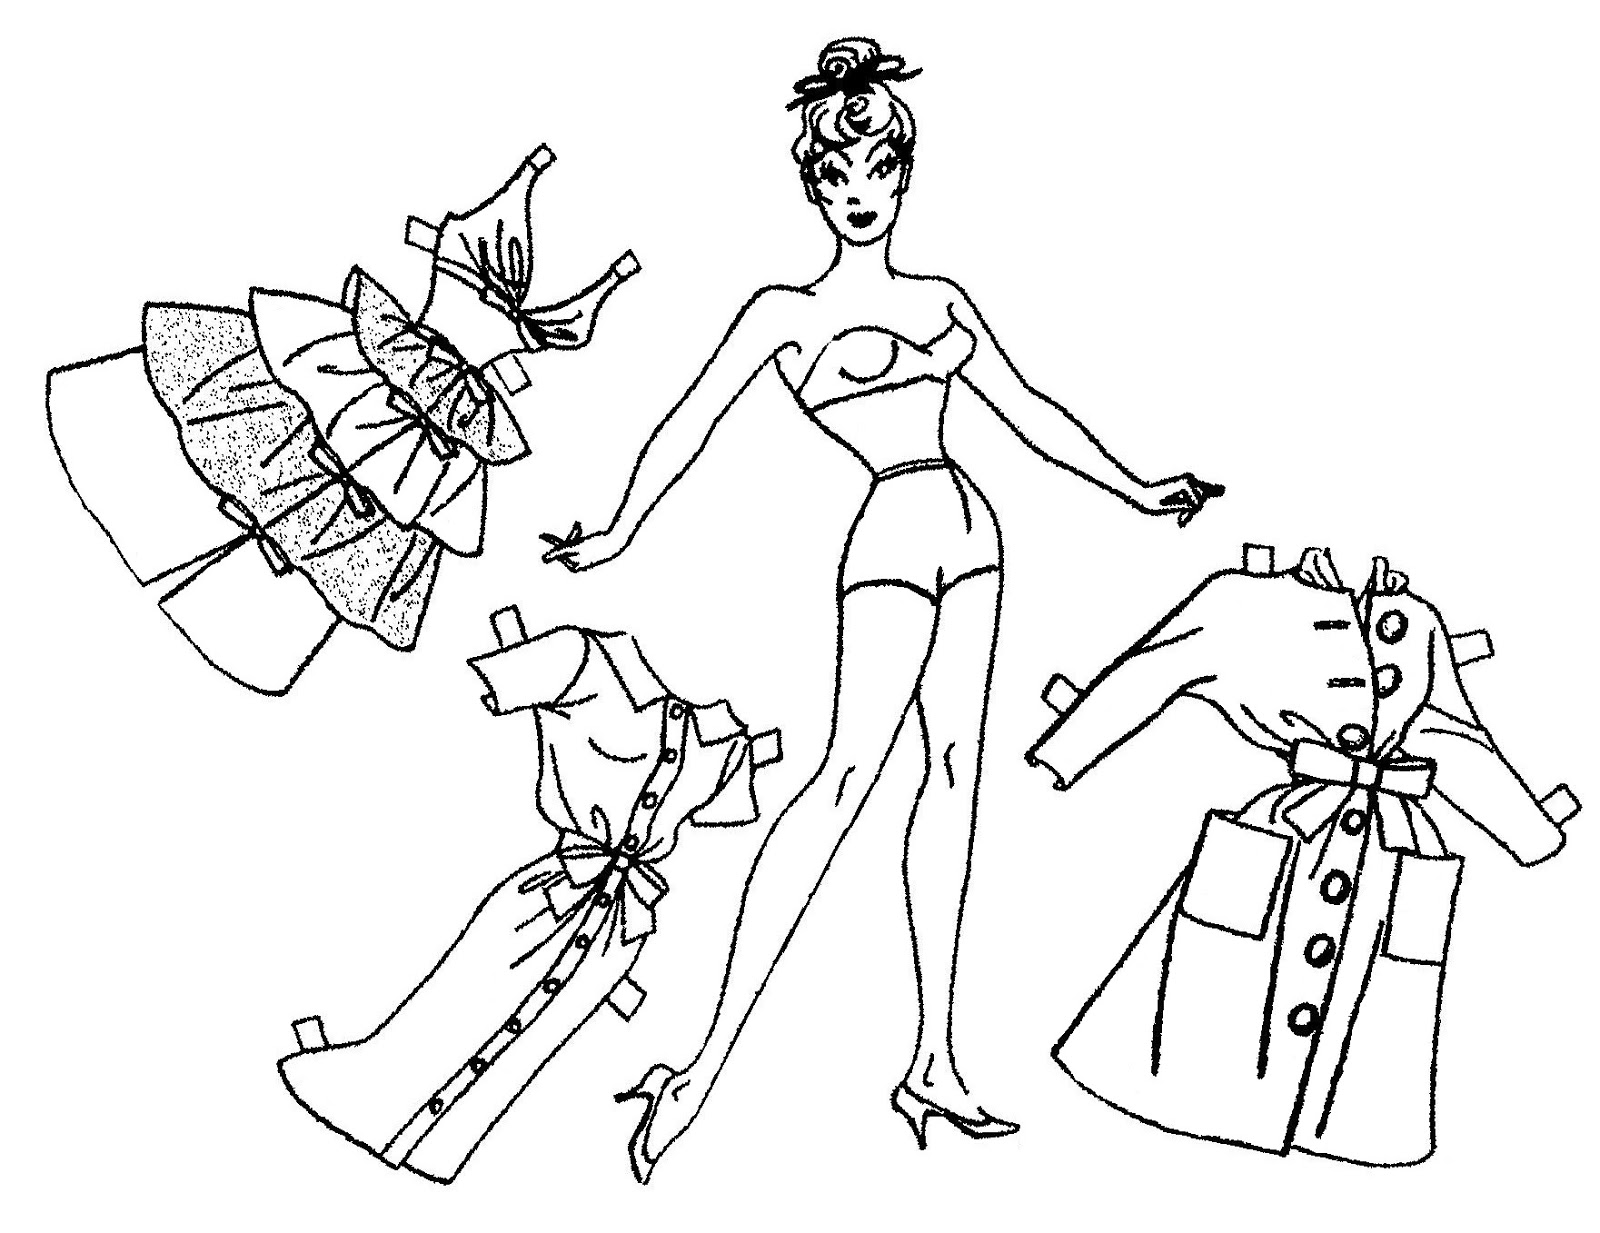 Mostly Paper Dolls Too!: MOPSY Comic Strip Paper Dolls